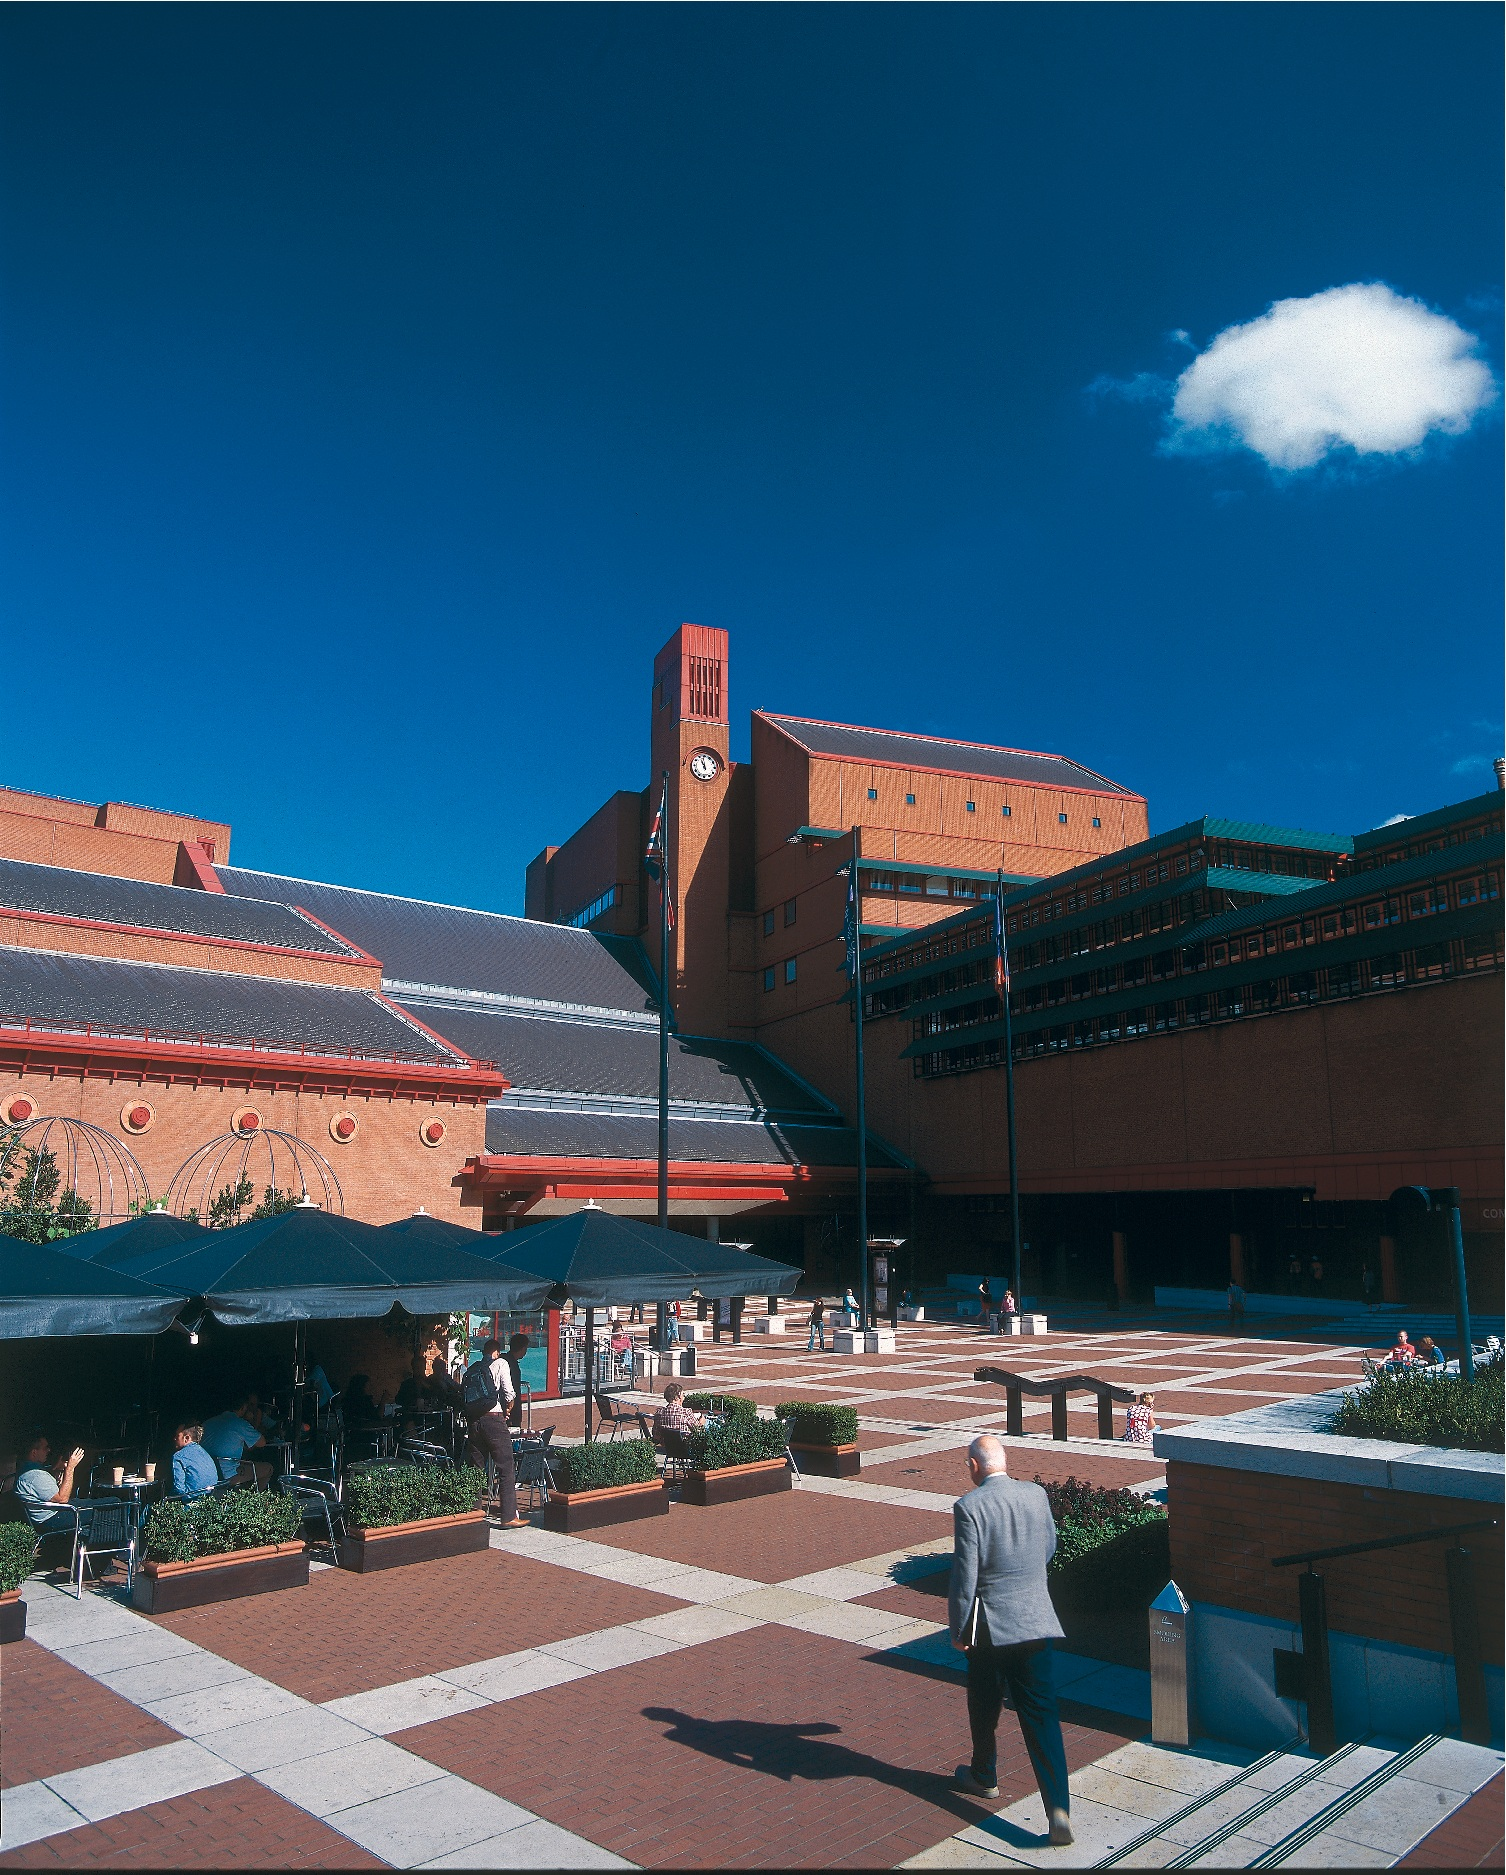 Photograph of the piazza outside the main entrance to the British Library at St Pancras London